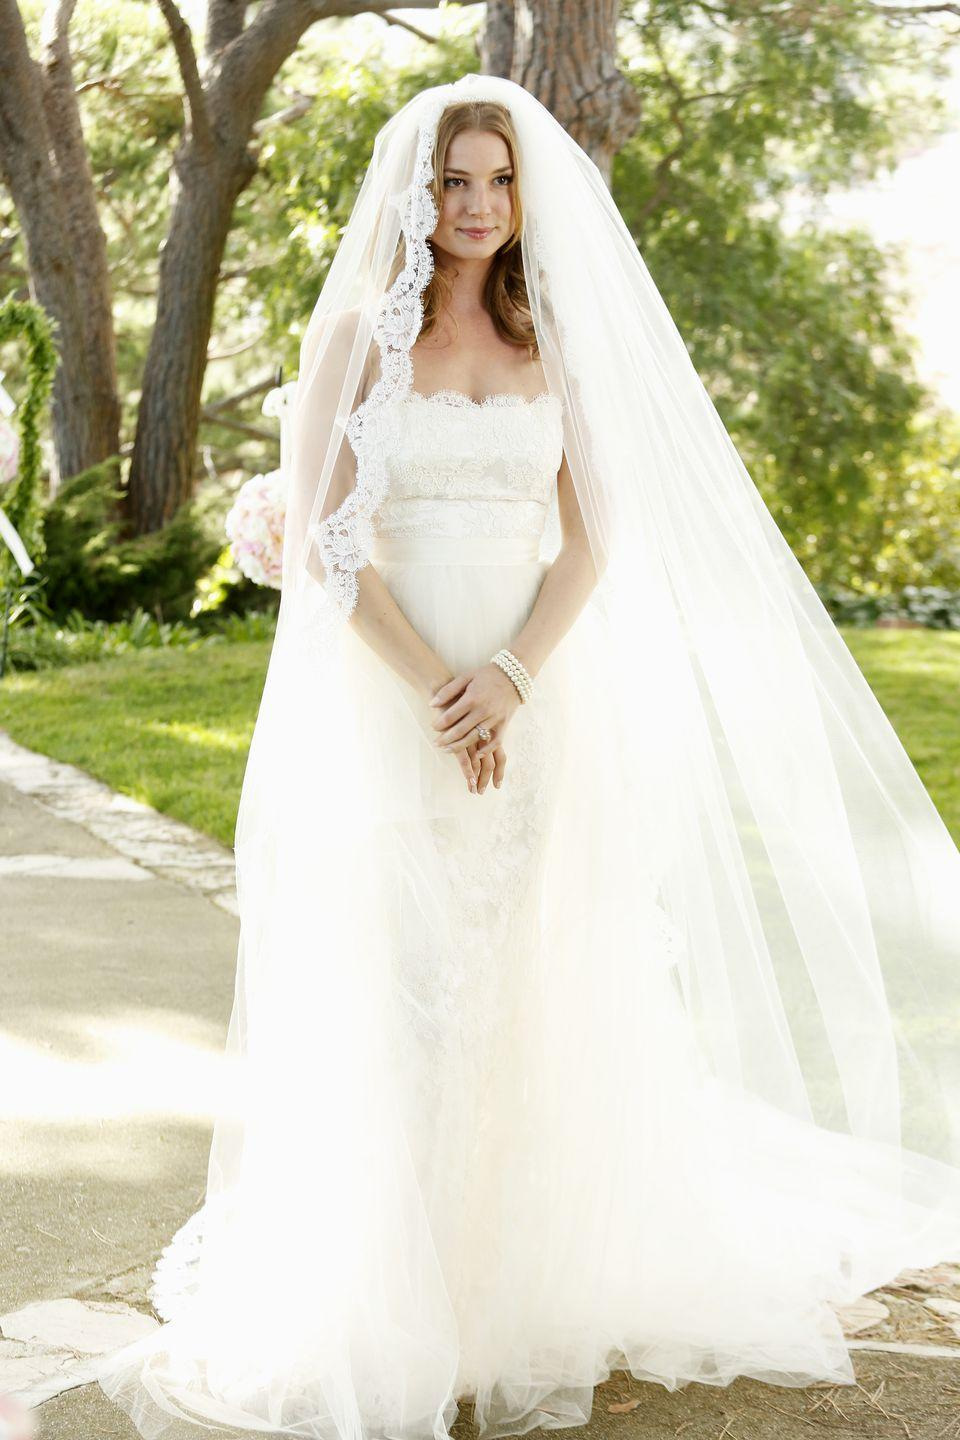 """<p>Emily's plan was almost complete with her impending vows to Daniel Grayson...she just had to say """"I do."""" For her big day, she wore a strapless lace gown with a tulle tearaway skirt that was <a href=""""https://www.eonline.com/news/475777/revenge-wedding-first-look-costume-designer-sounds-off-on-creating-emily-s-gorgeous-gown-see-the-pic"""" rel=""""nofollow noopener"""" target=""""_blank"""" data-ylk=""""slk:designed by the show's costume designer"""" class=""""link rapid-noclick-resp"""">designed by the show's costume designer</a>, Jill Ohannesson. </p>"""